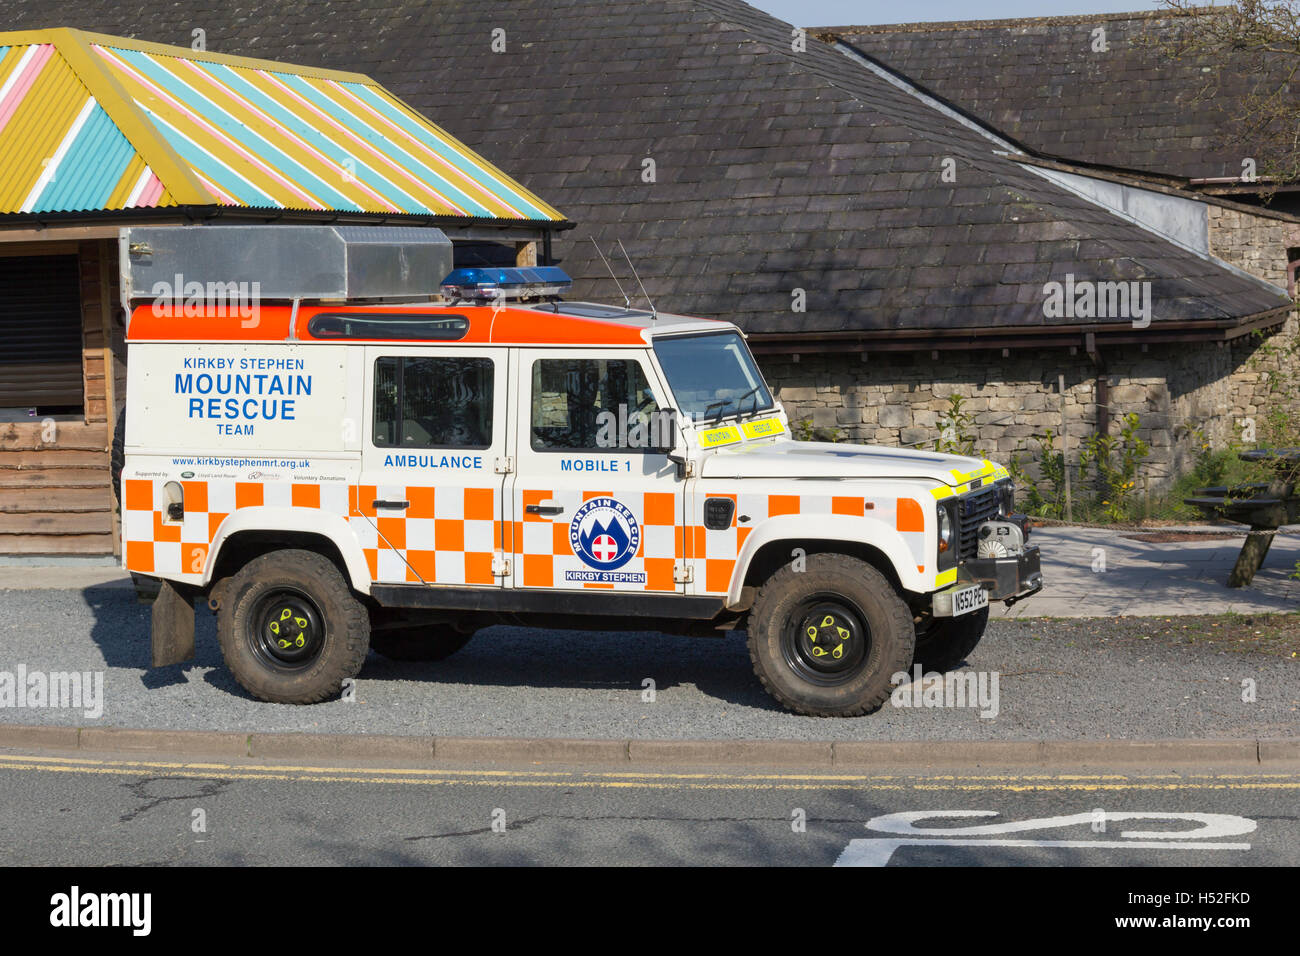 Kirkby Stephen Mountain Rescue Land Rover  parked at M6 motorway Tebay services southbound as part of a fund raising - Stock Image